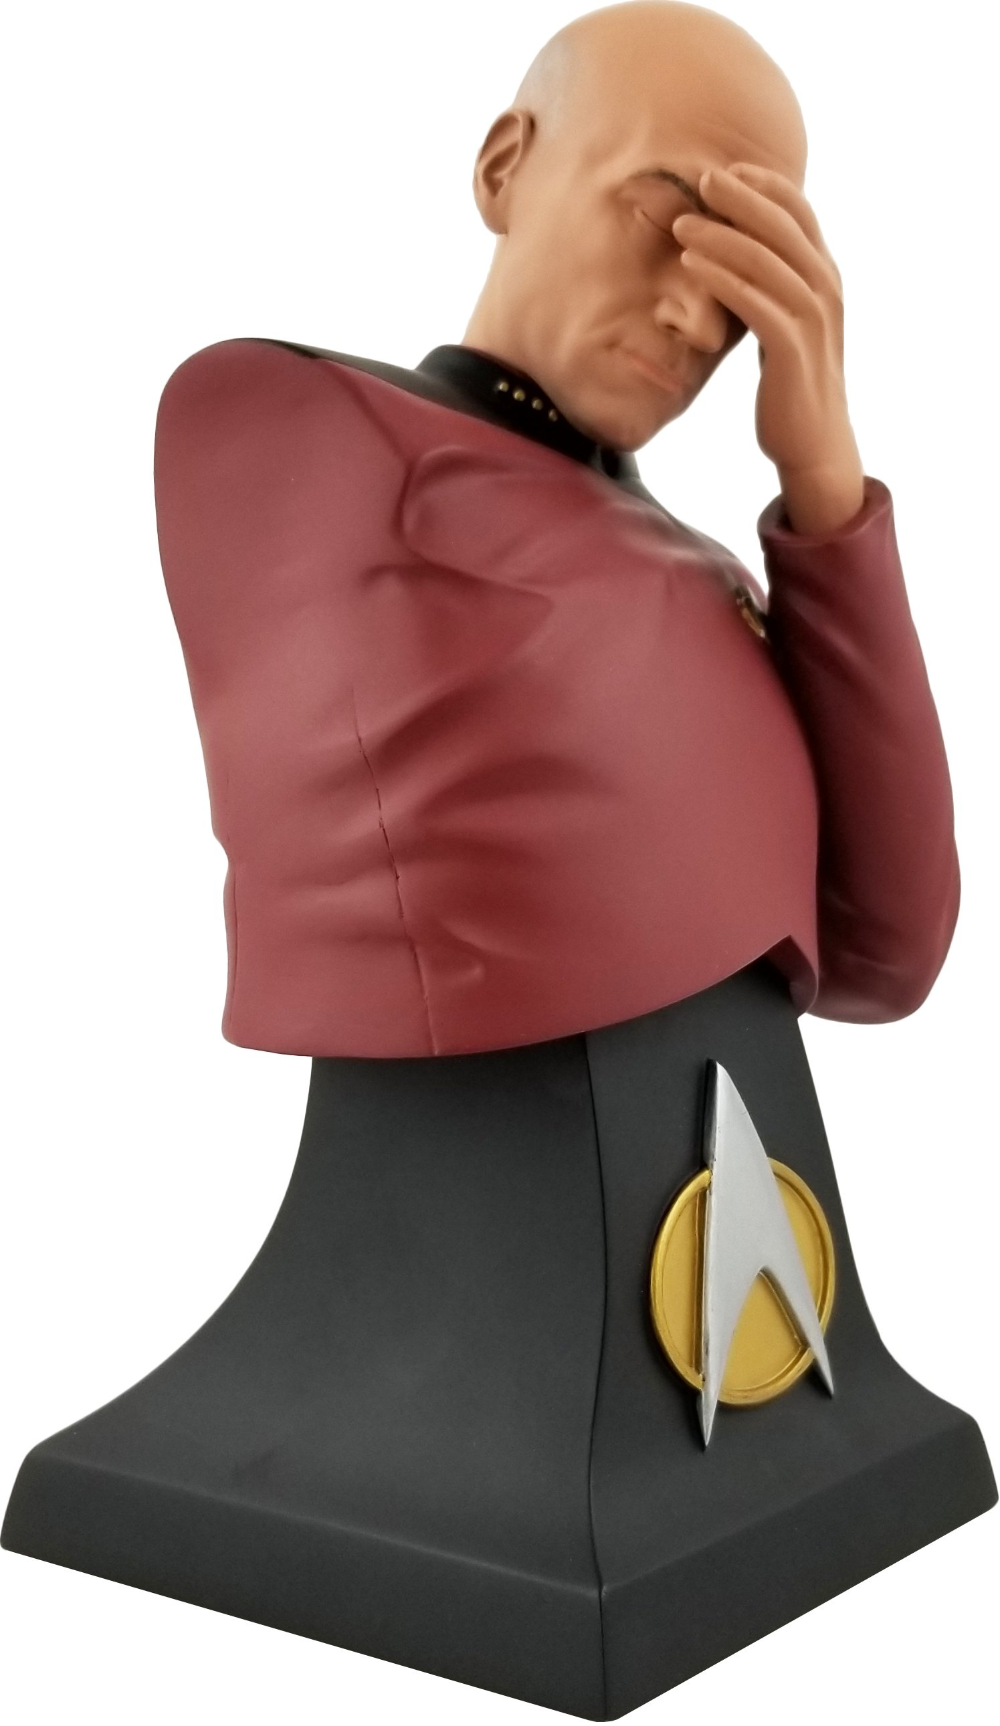 Star Trek Picard Facepalm Bust Is The Perfect 2020 Convention Exclusive Star Trek Geek Culture Picard